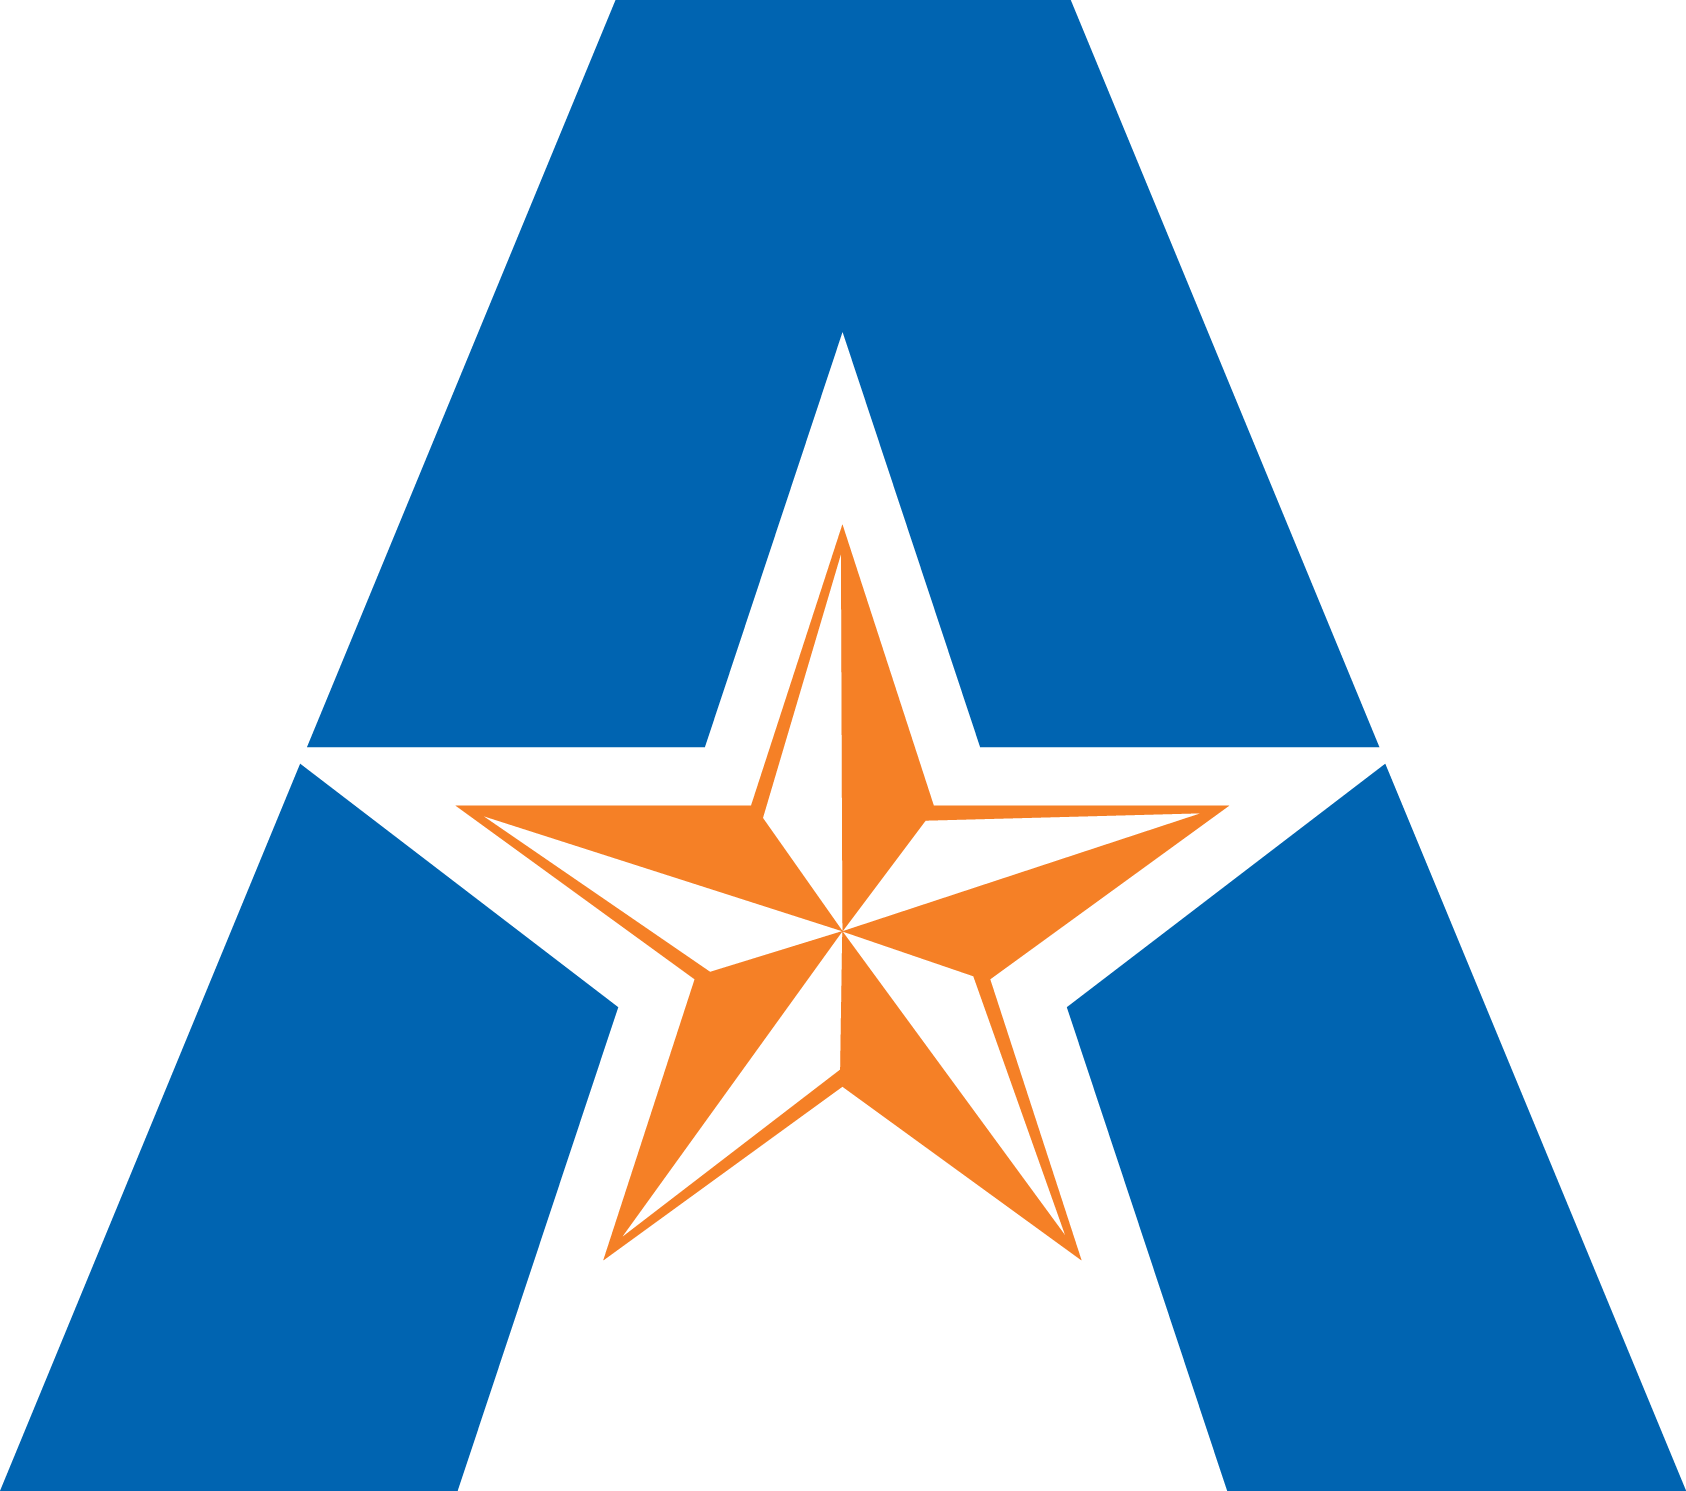 By University of Texas at Arlington (http://www.uta.edu/uta/) [Public domain], via Wikimedia Commons